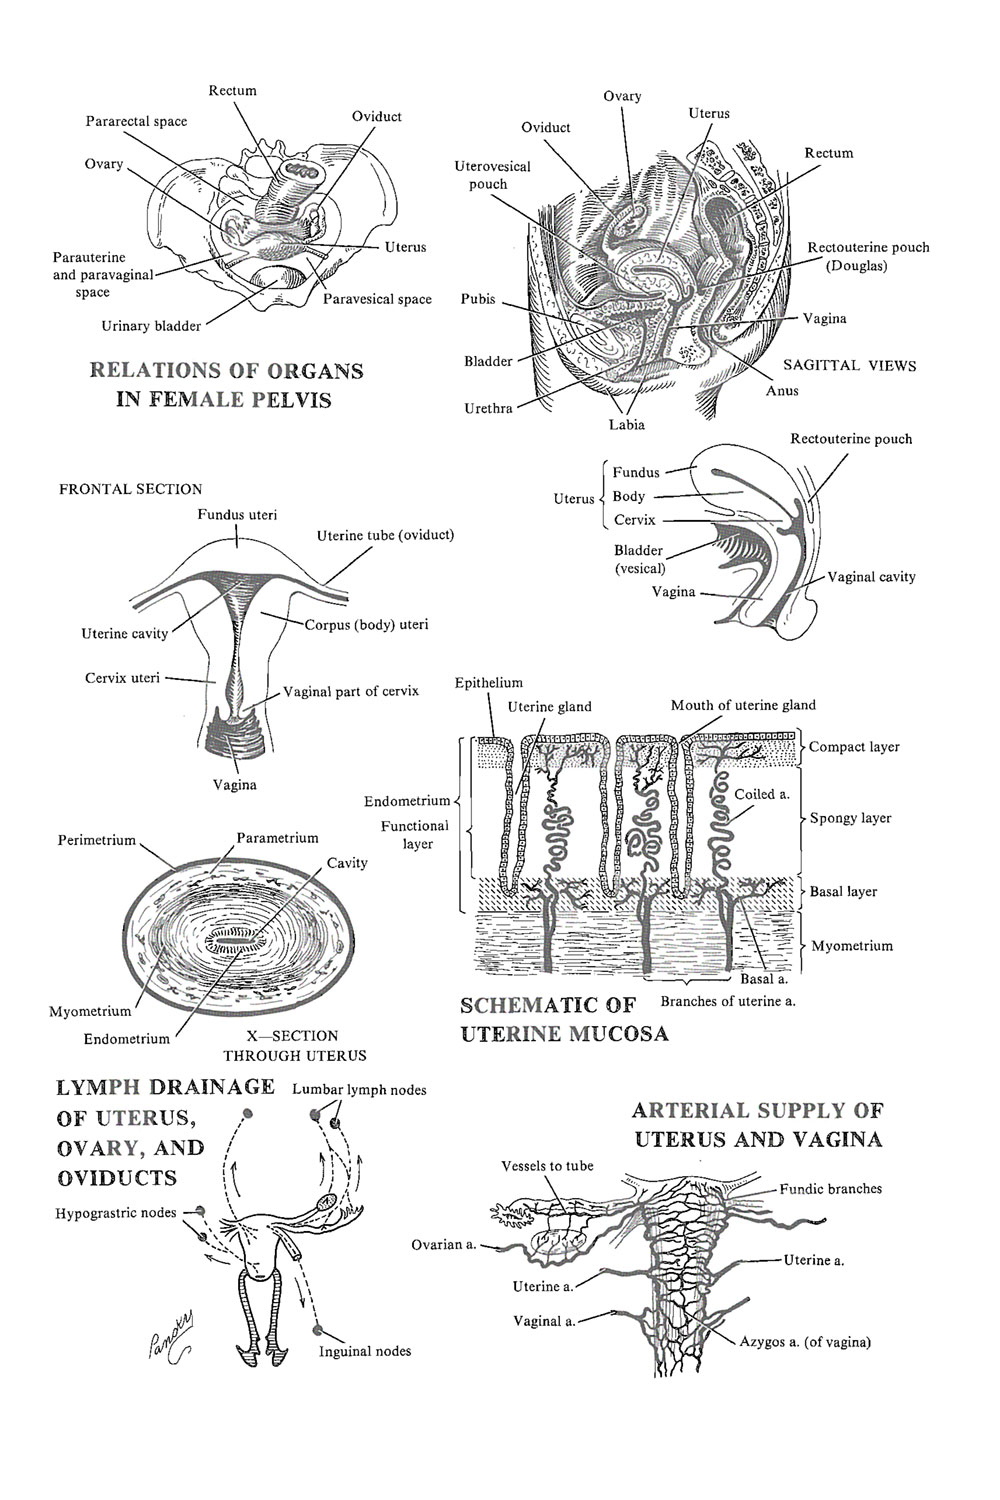 the adult female uterus: image #1